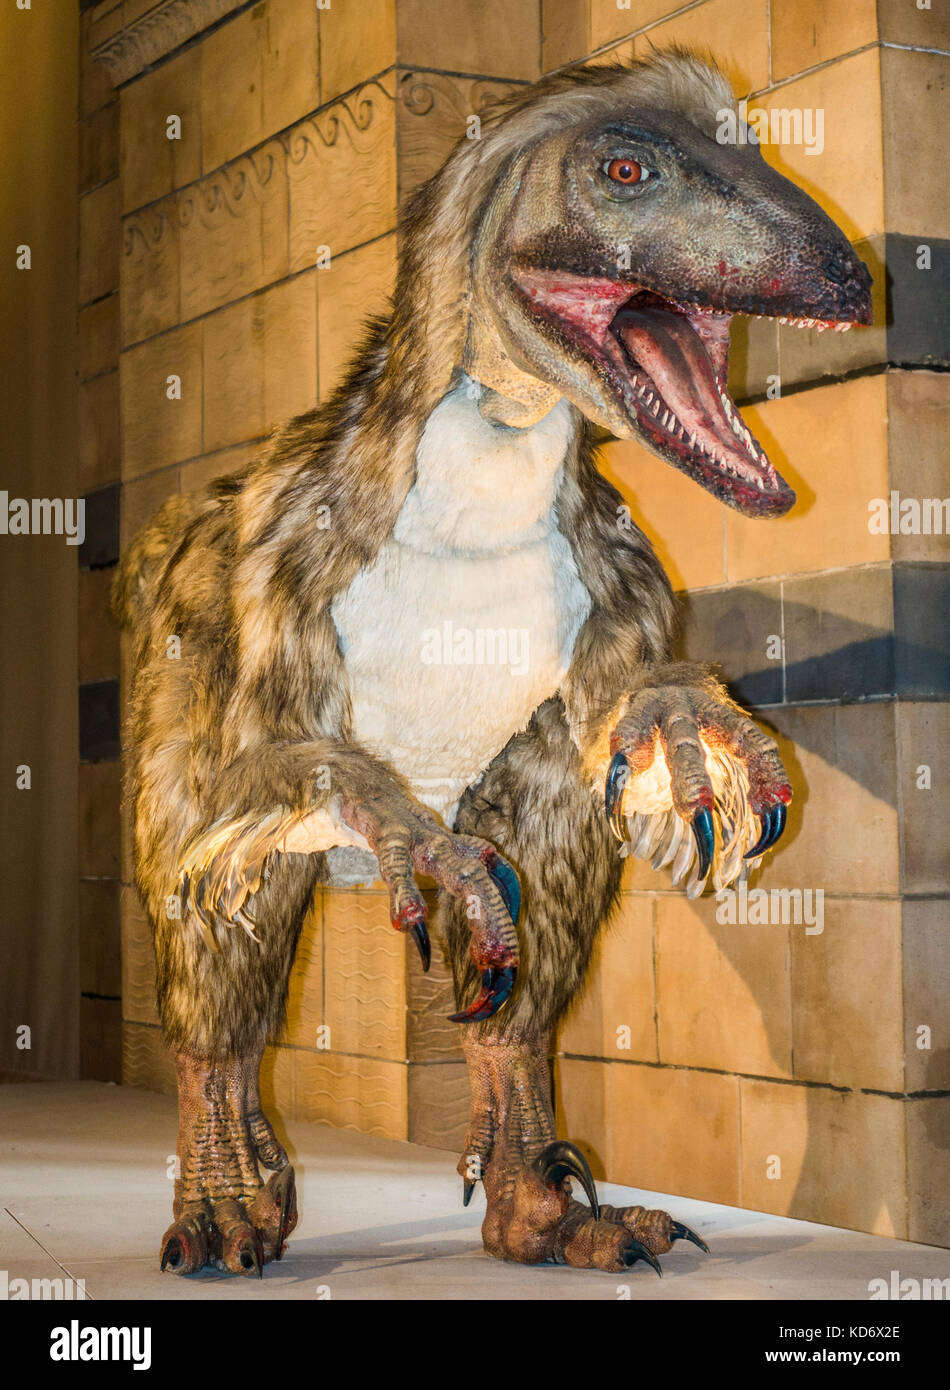 Deinonychus (meaning terrible claw), feathered raptor dinosaur. This is an animatronics exhibit at the Natural History - Stock Image